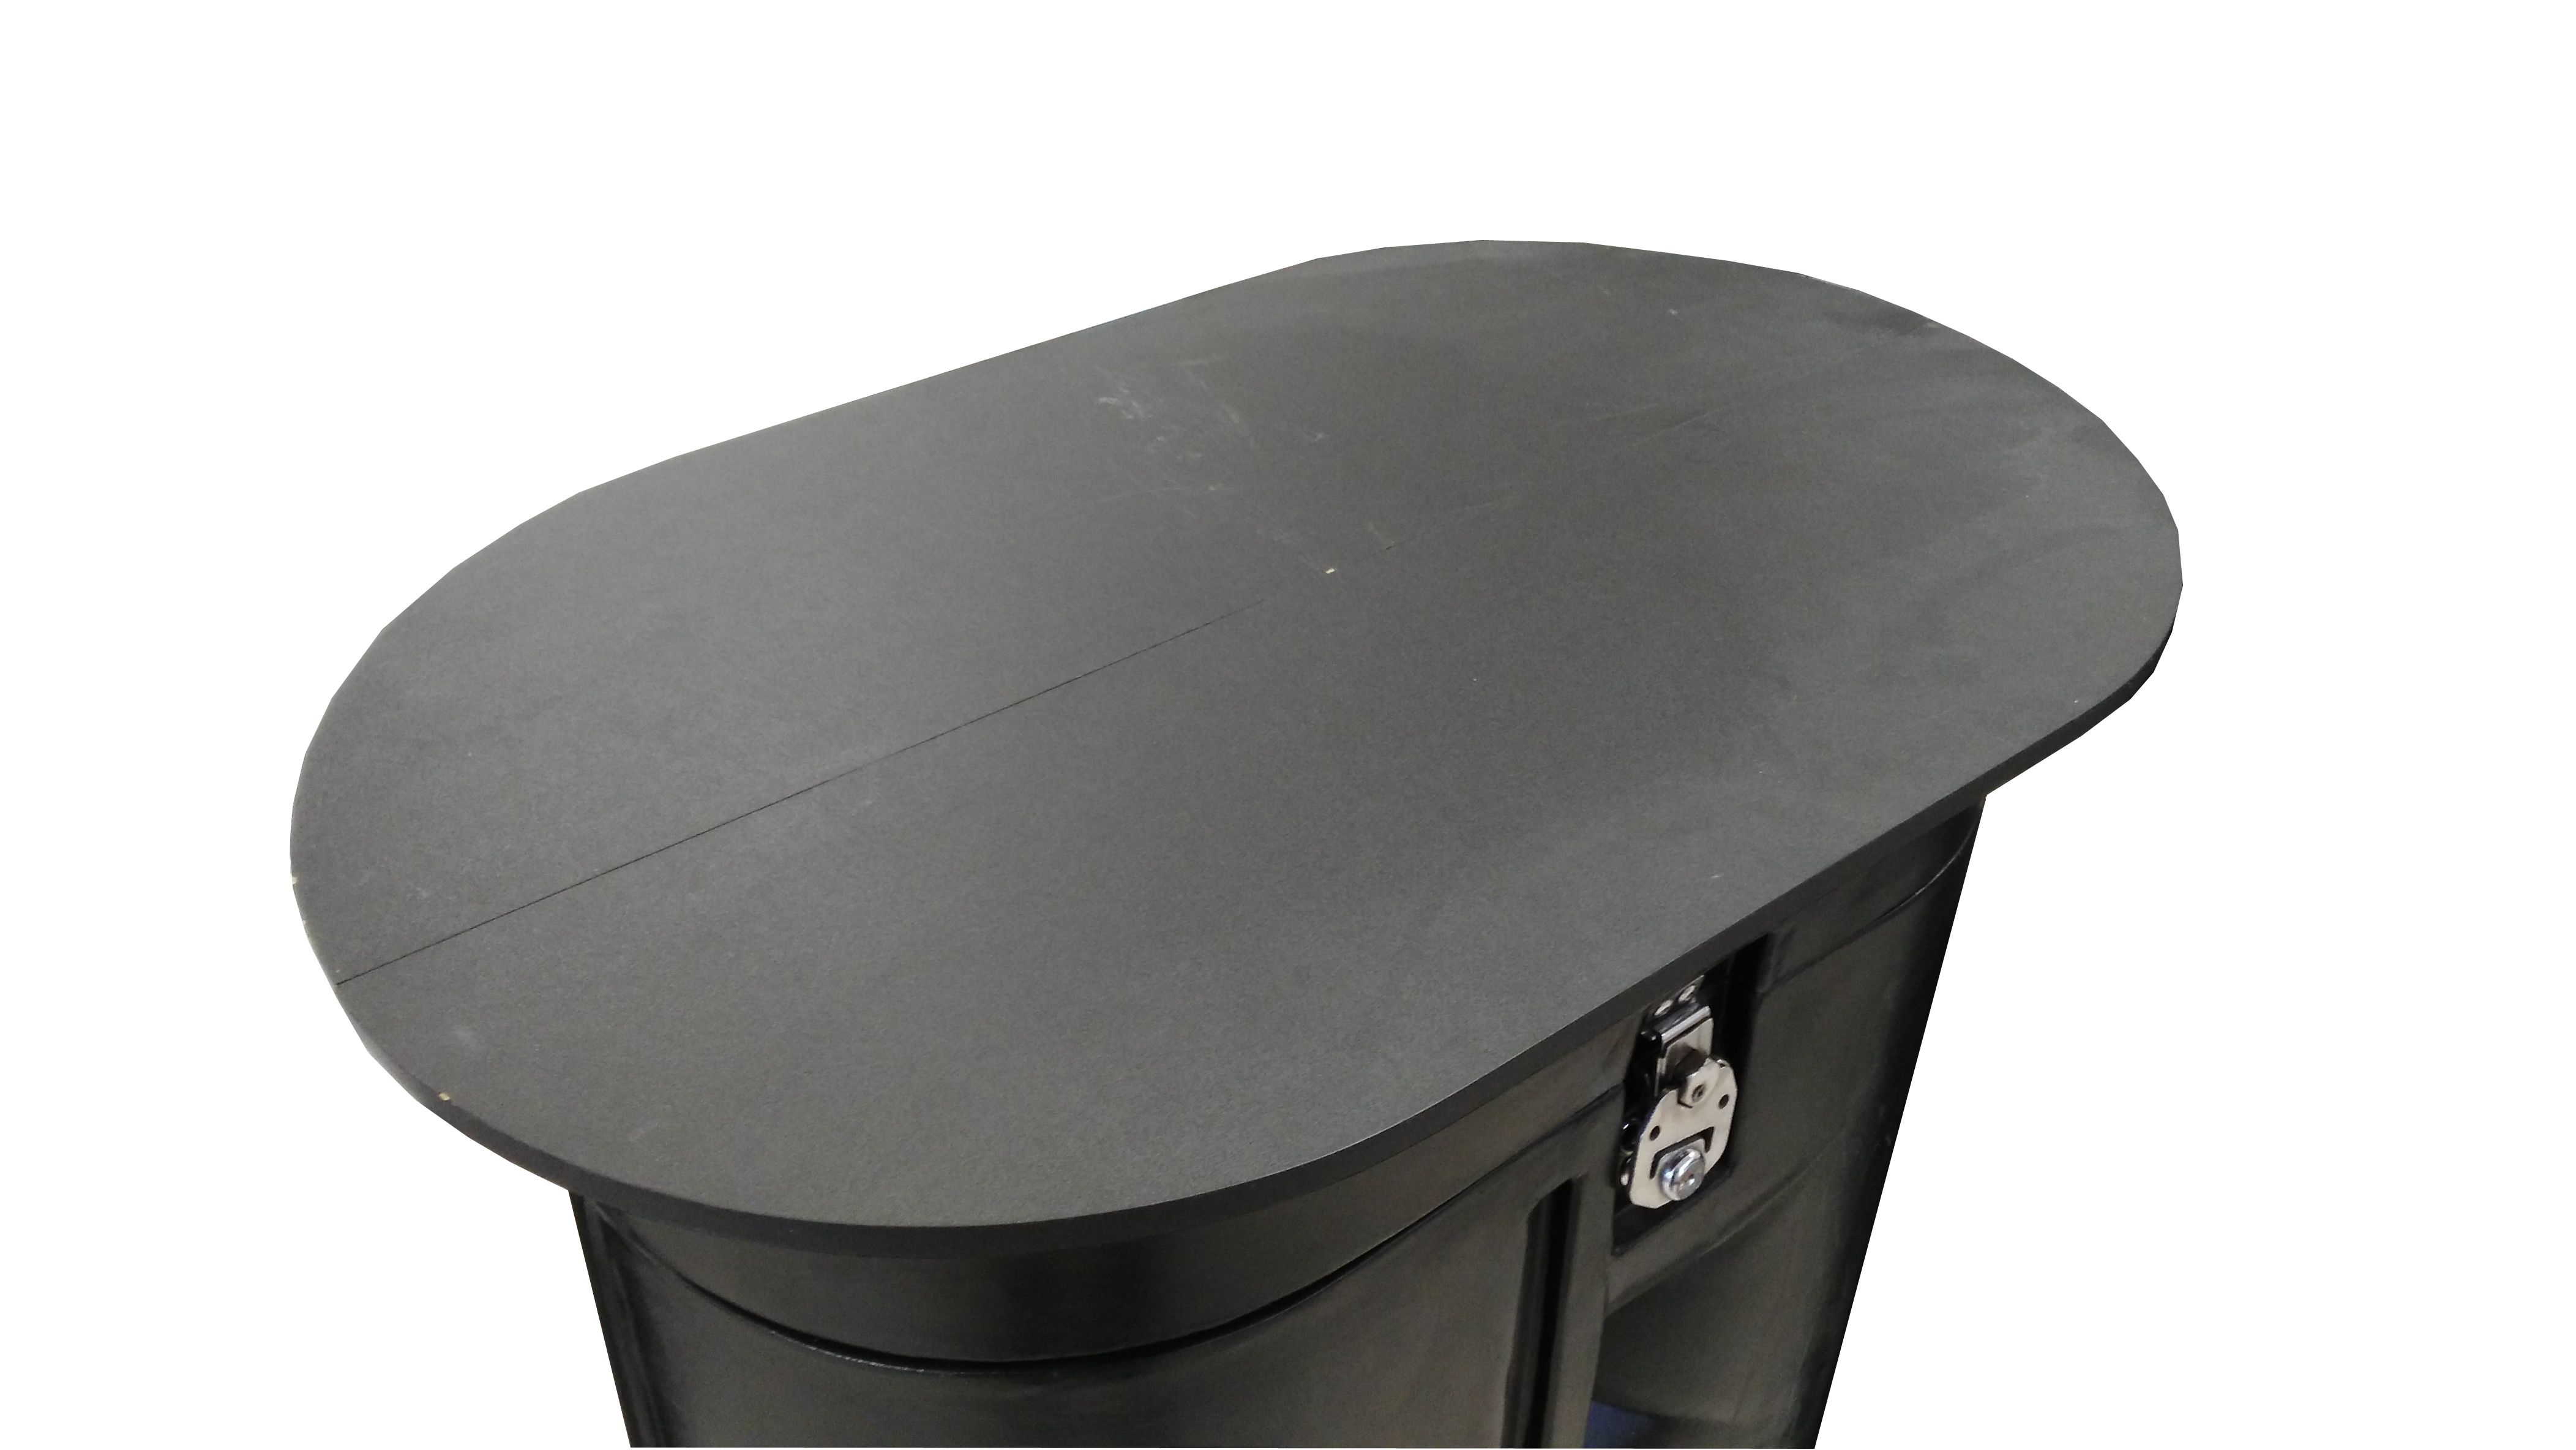 Podium Foldable Counter Top